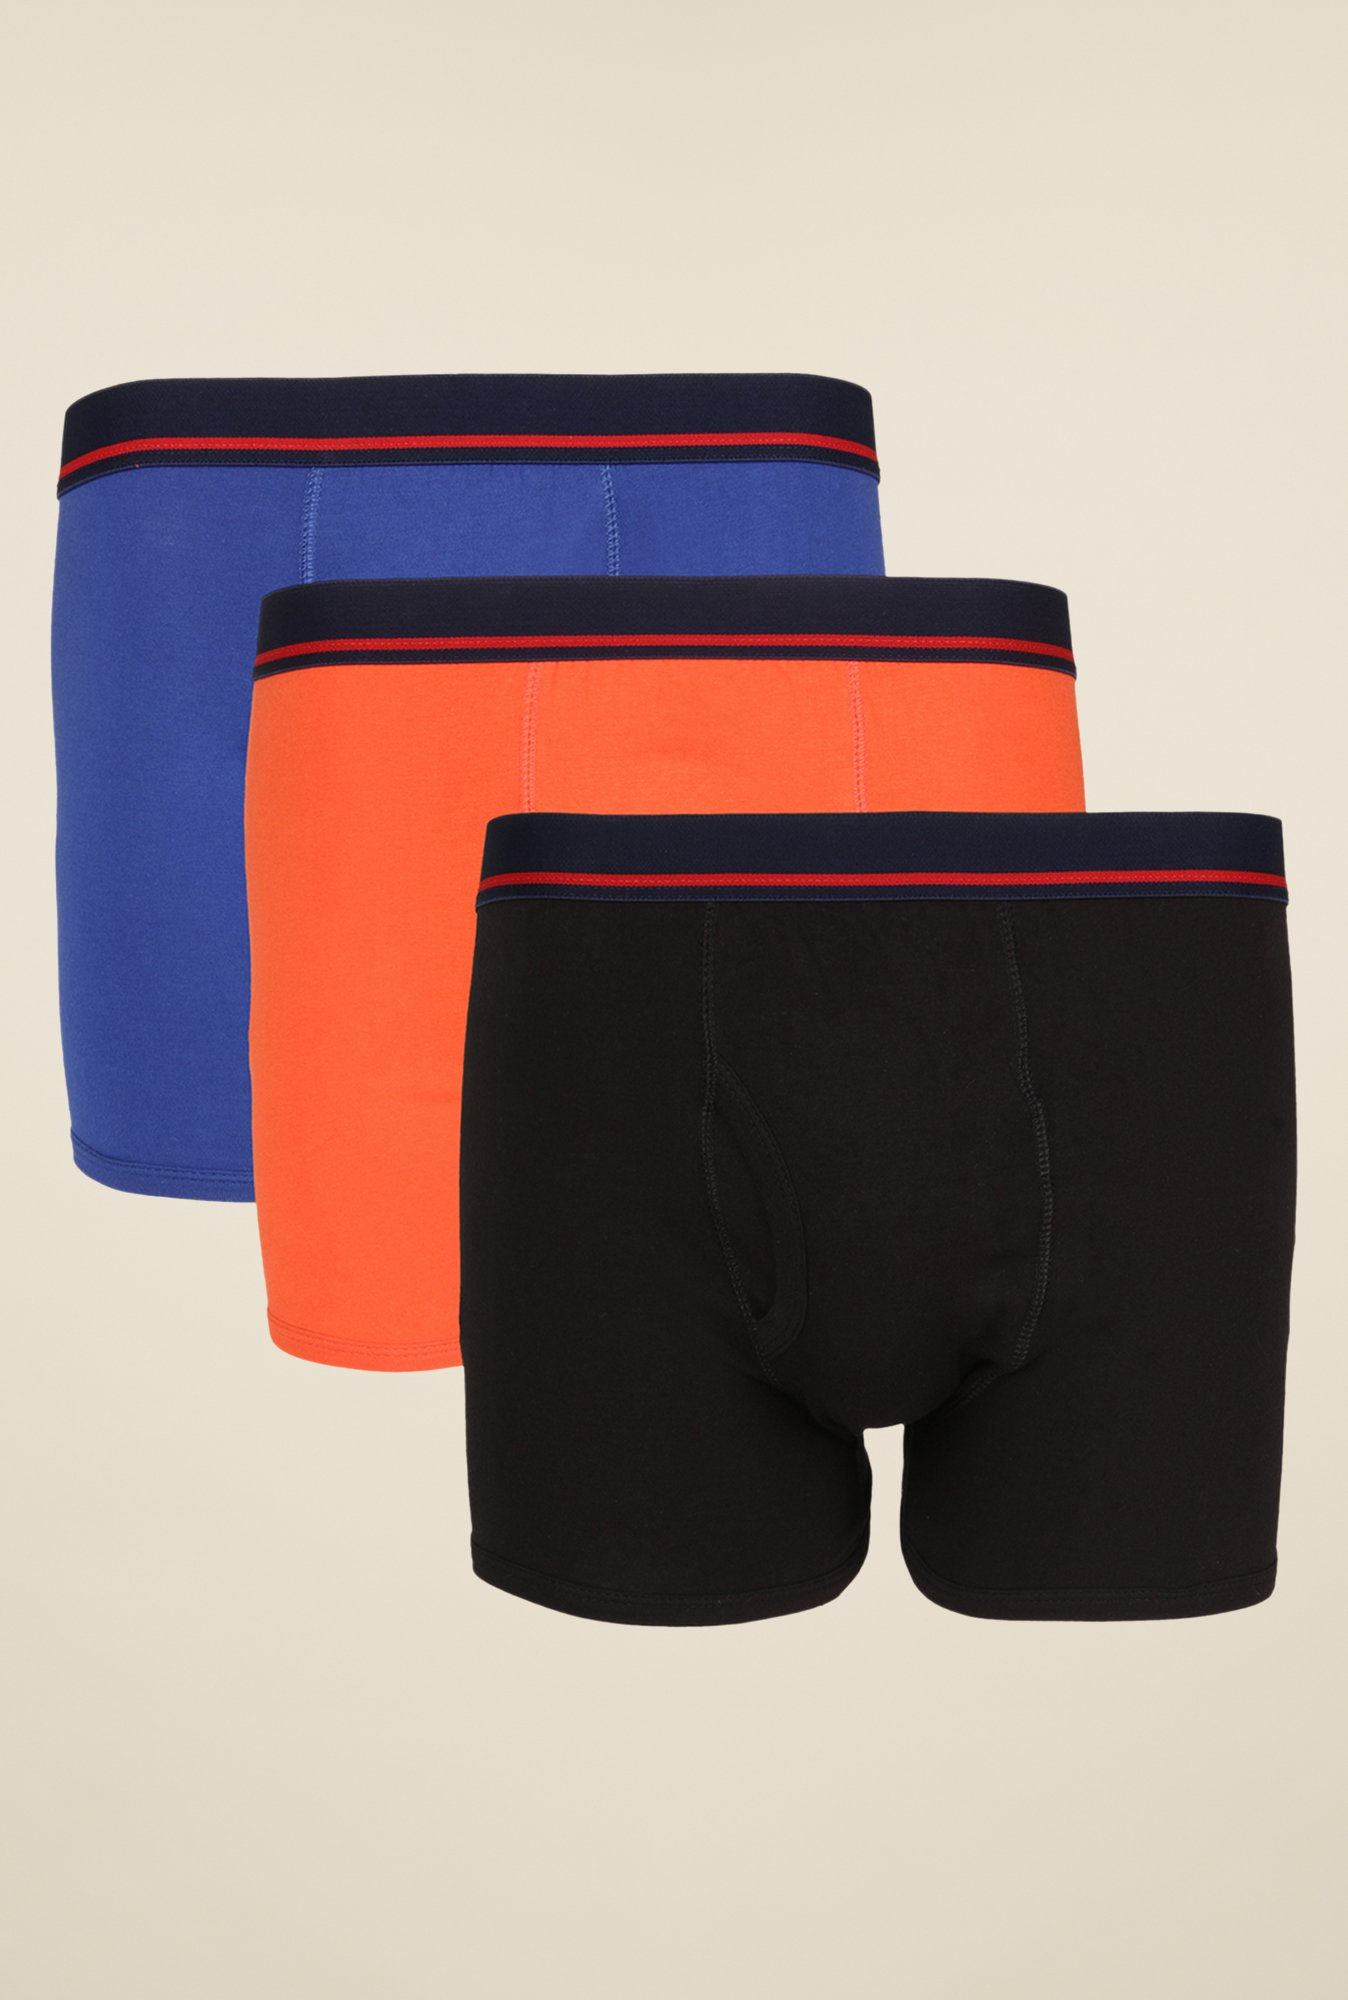 Yepme Blue, Orange & Black Rex Trunks (Pack Of 3)